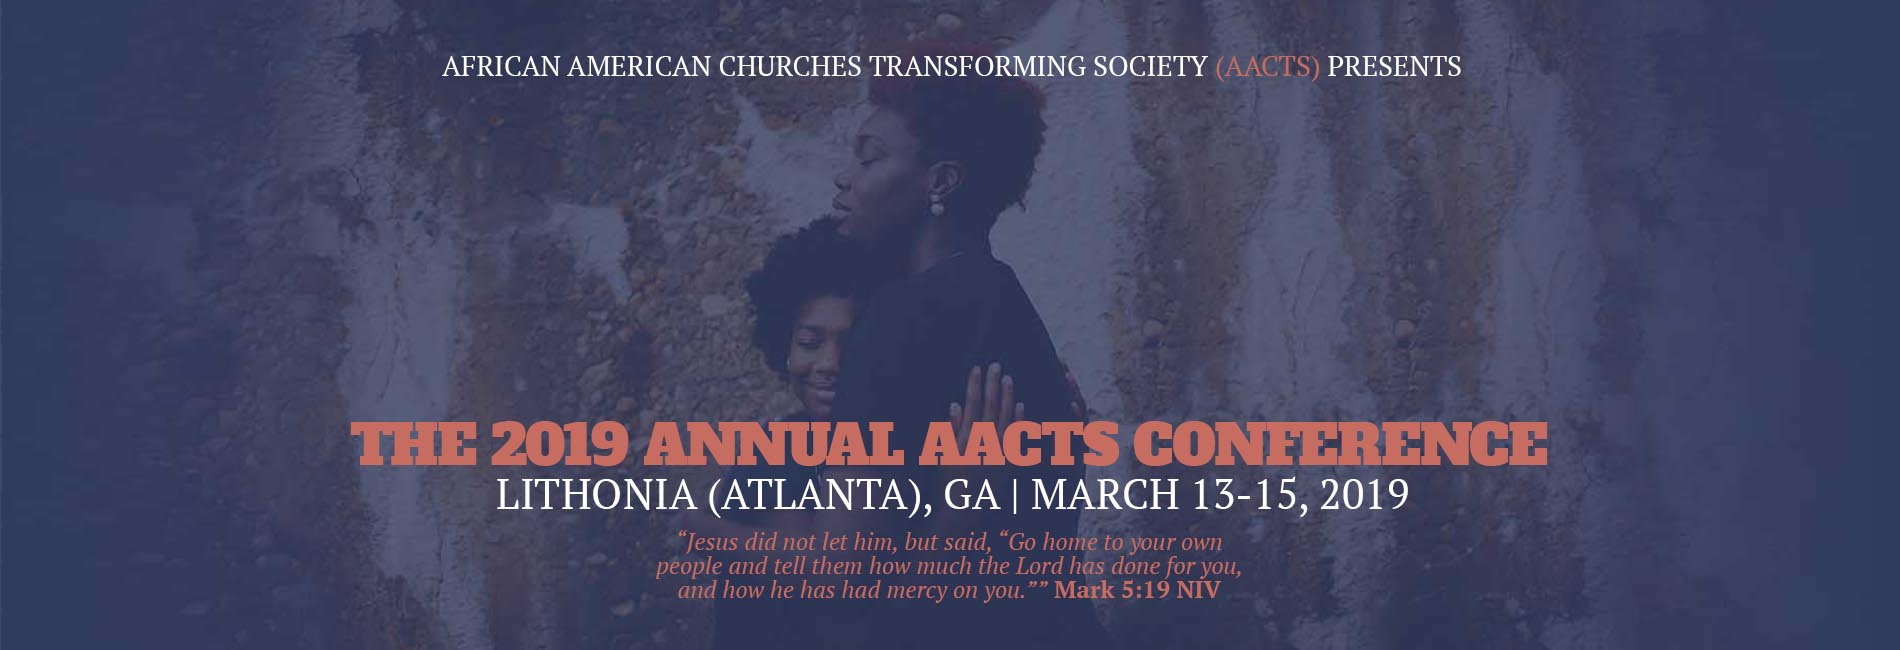 aacts-conference-2019